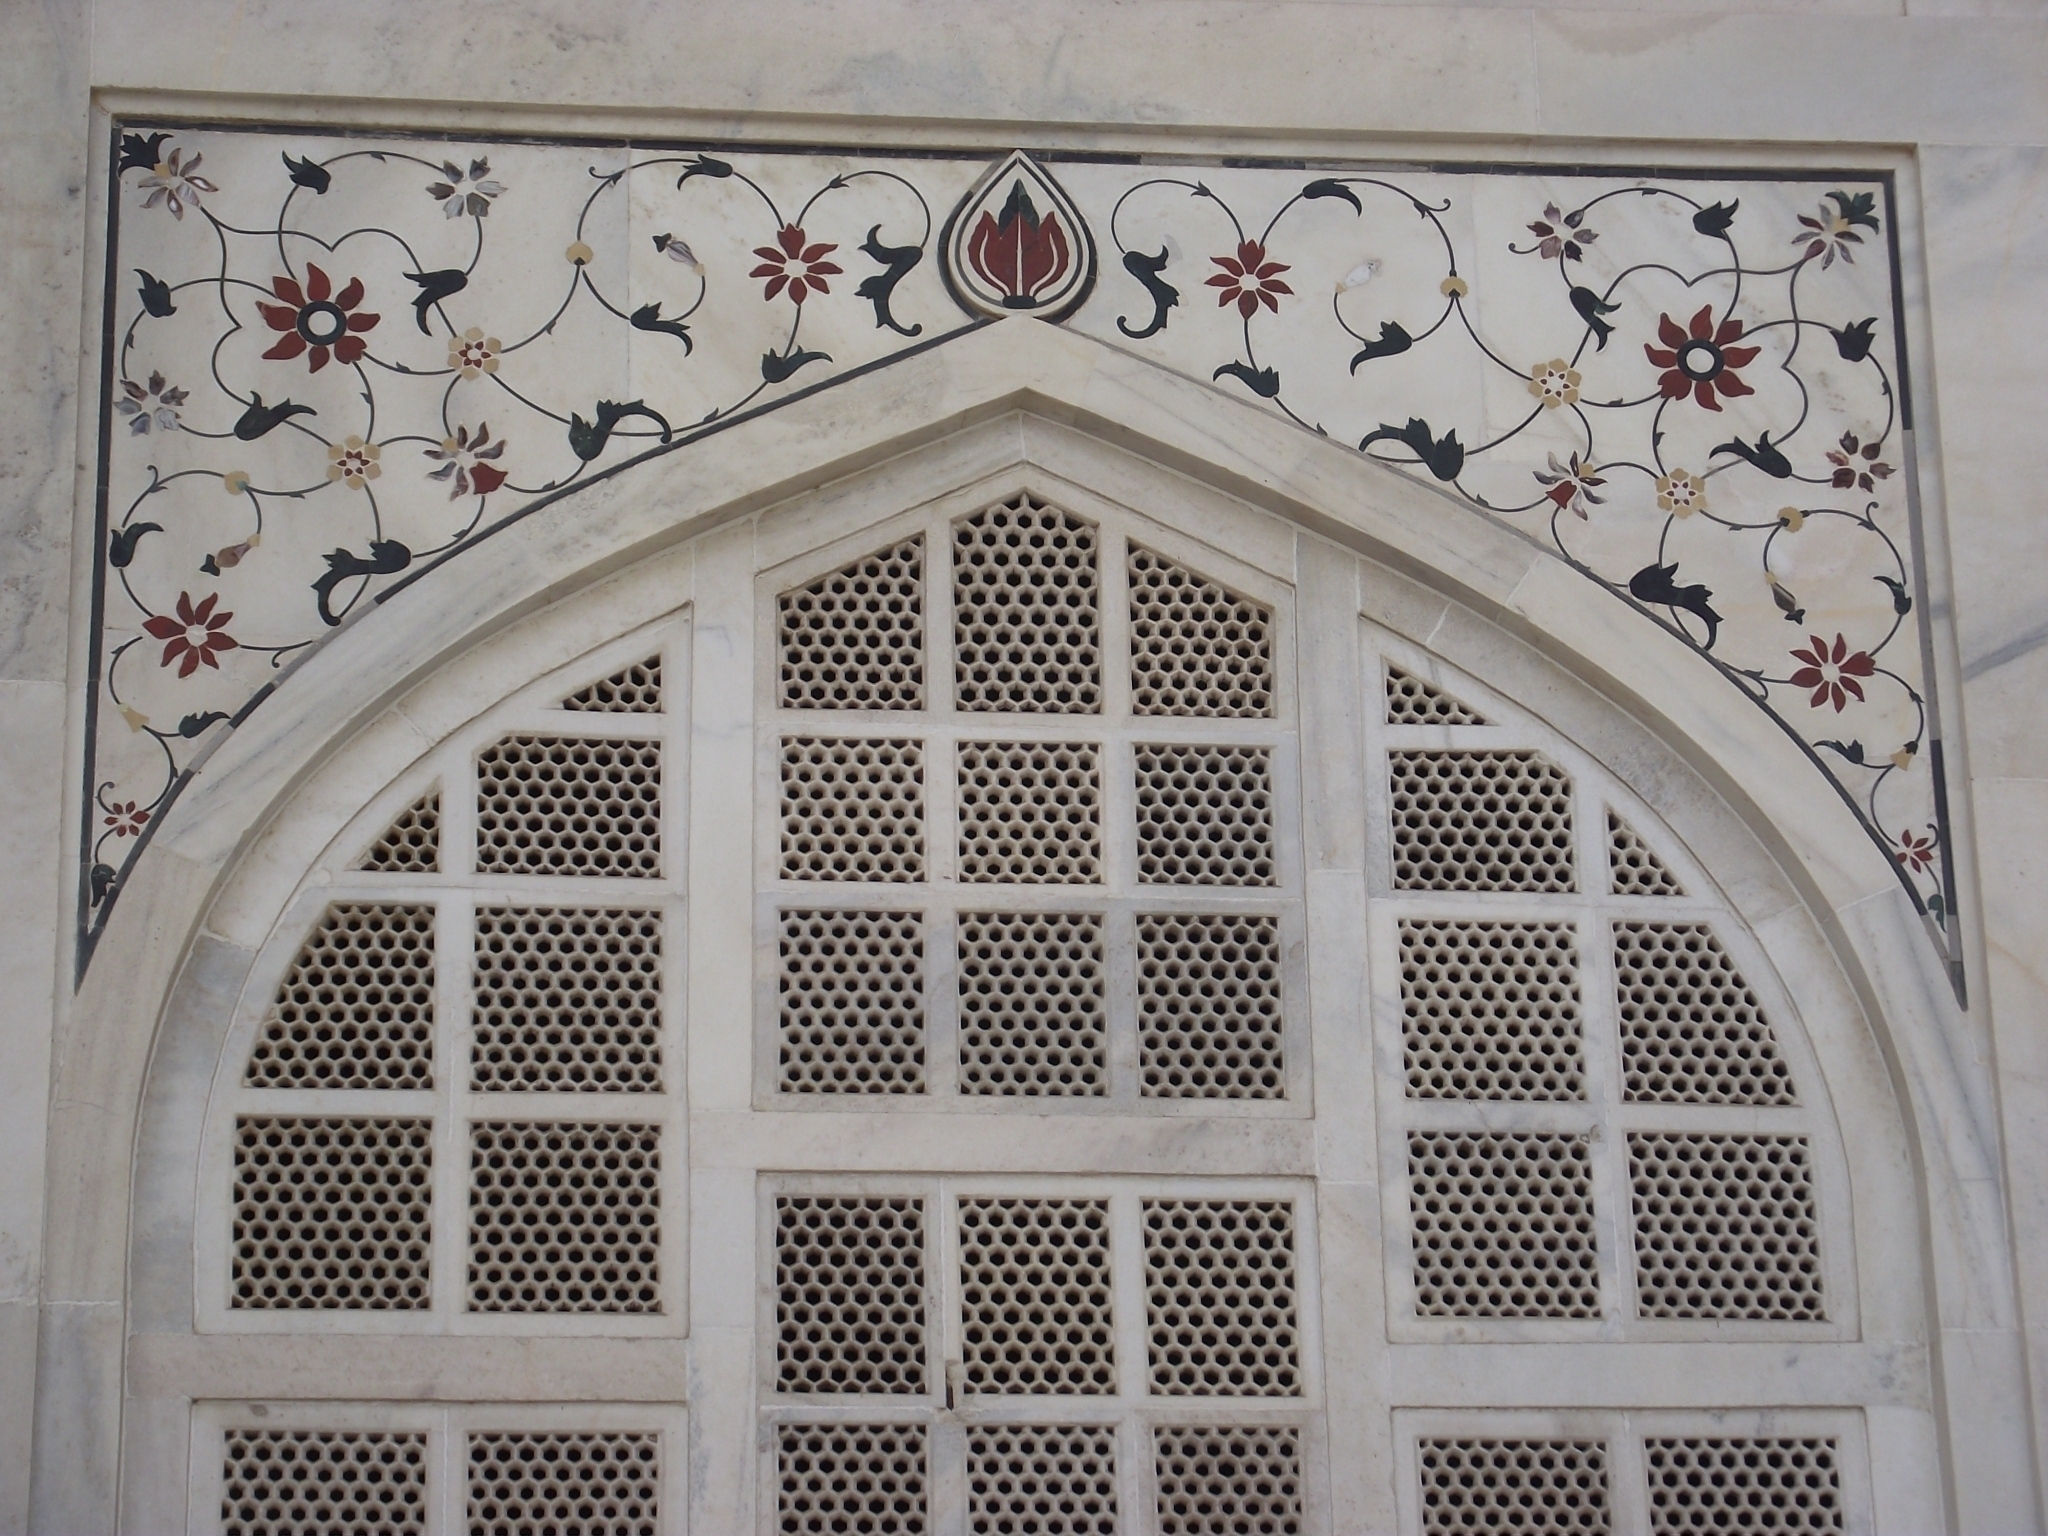 File:decoration Art At Taj Mahal – Wikimedia Commons Inside Famous Taj Mahal Wall Art (View 2 of 15)